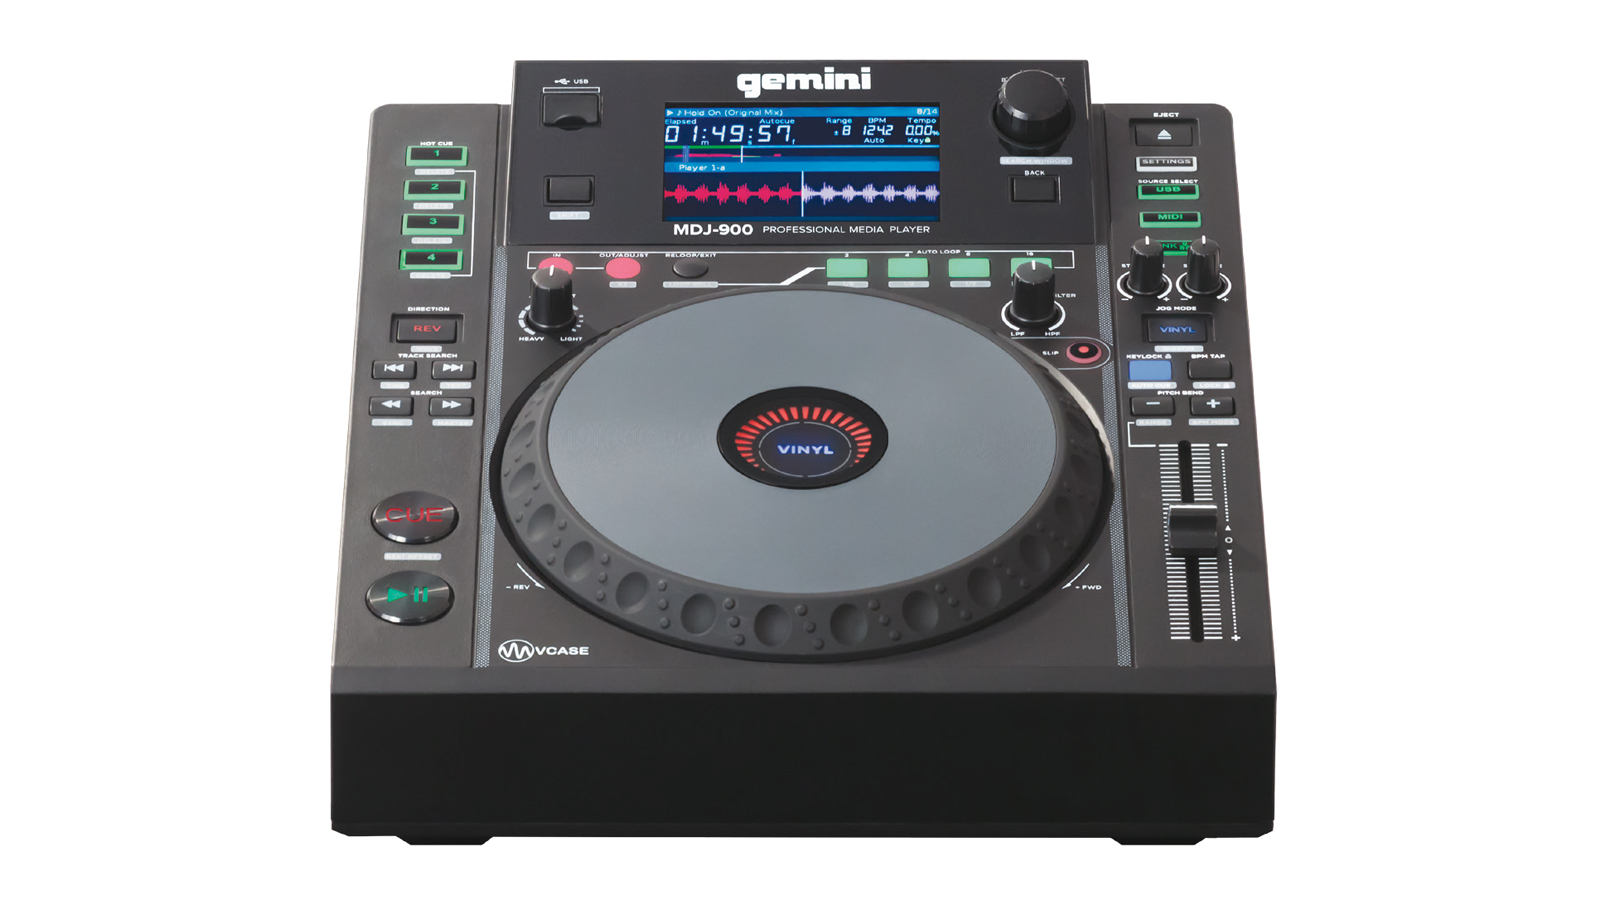 Gemini MDJ-900 Player